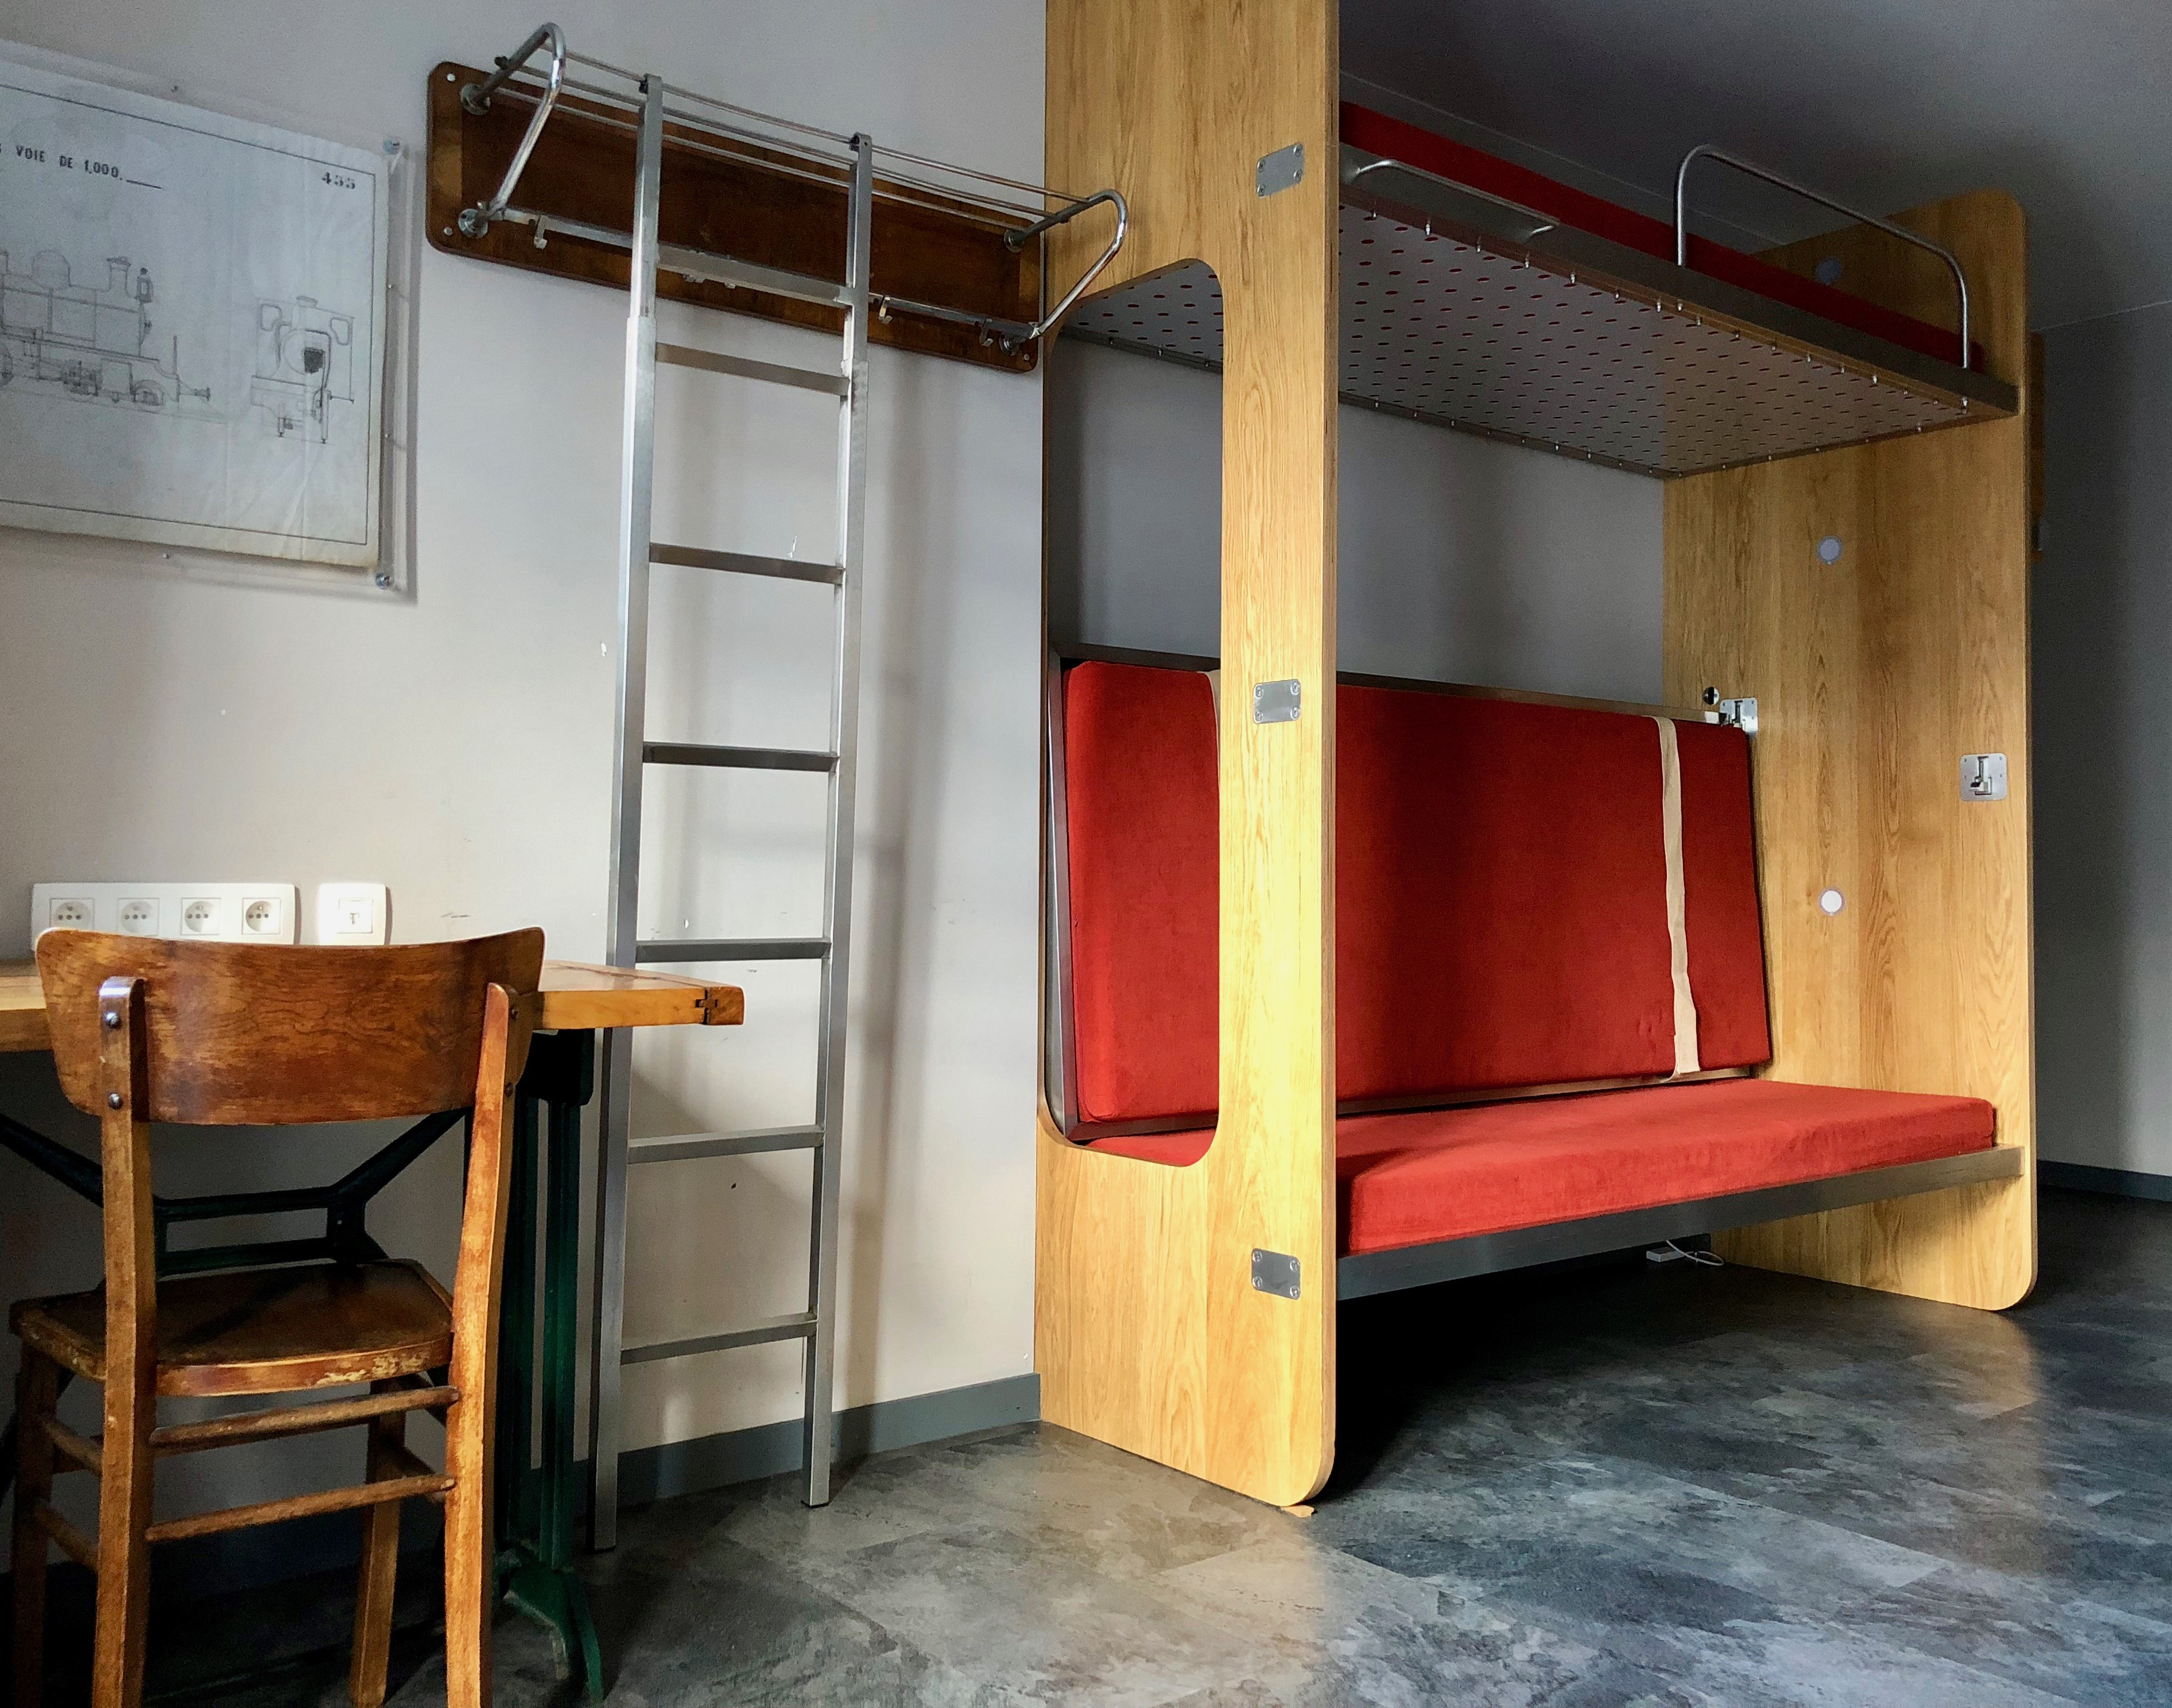 chambre avec bureau train hostel bruxelles belgique plus au nord. Black Bedroom Furniture Sets. Home Design Ideas